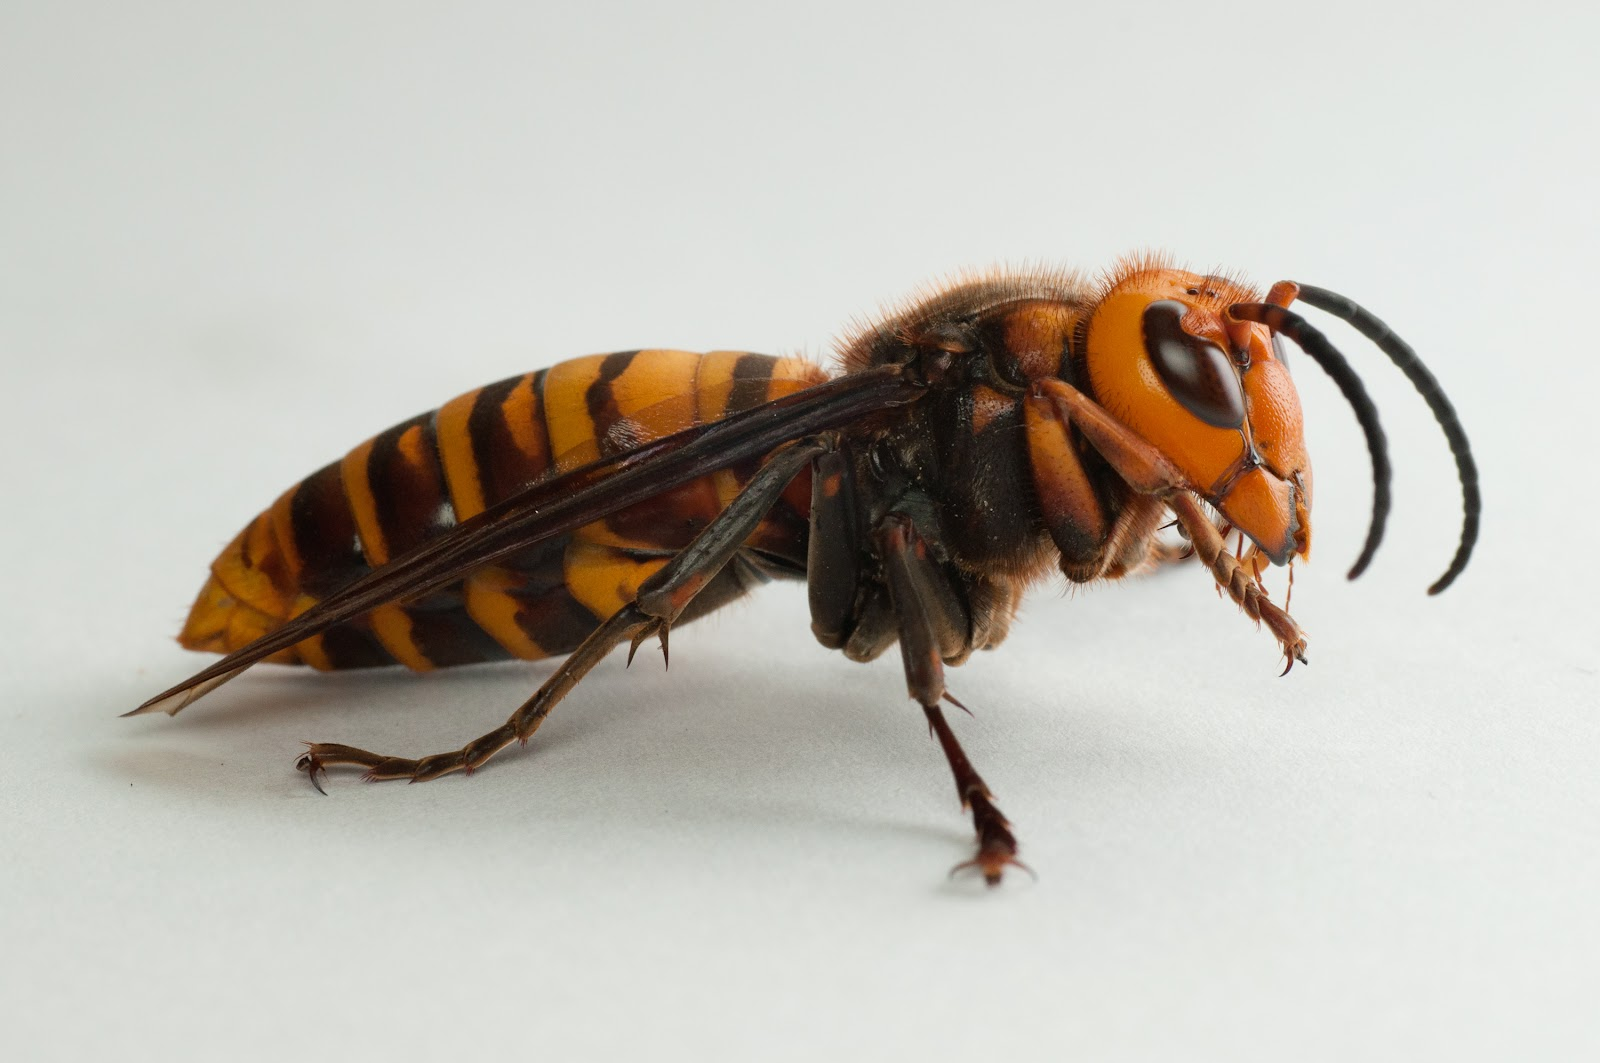 Japanese giant hornet - Wikipedia